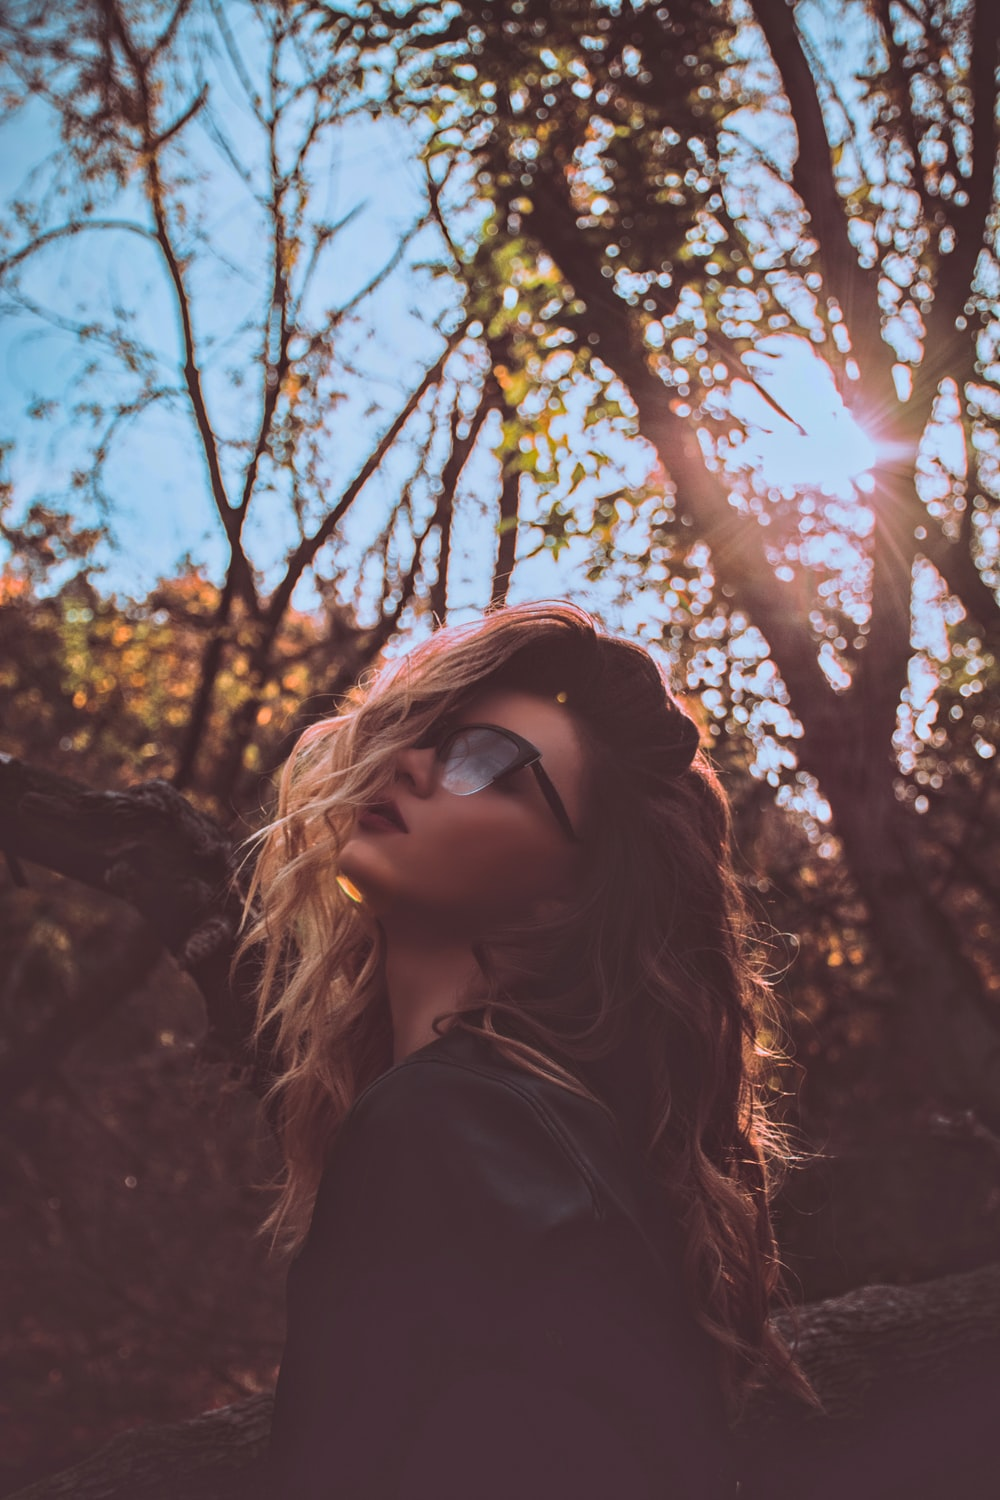 woman wearing sunglasses near trees during daytime